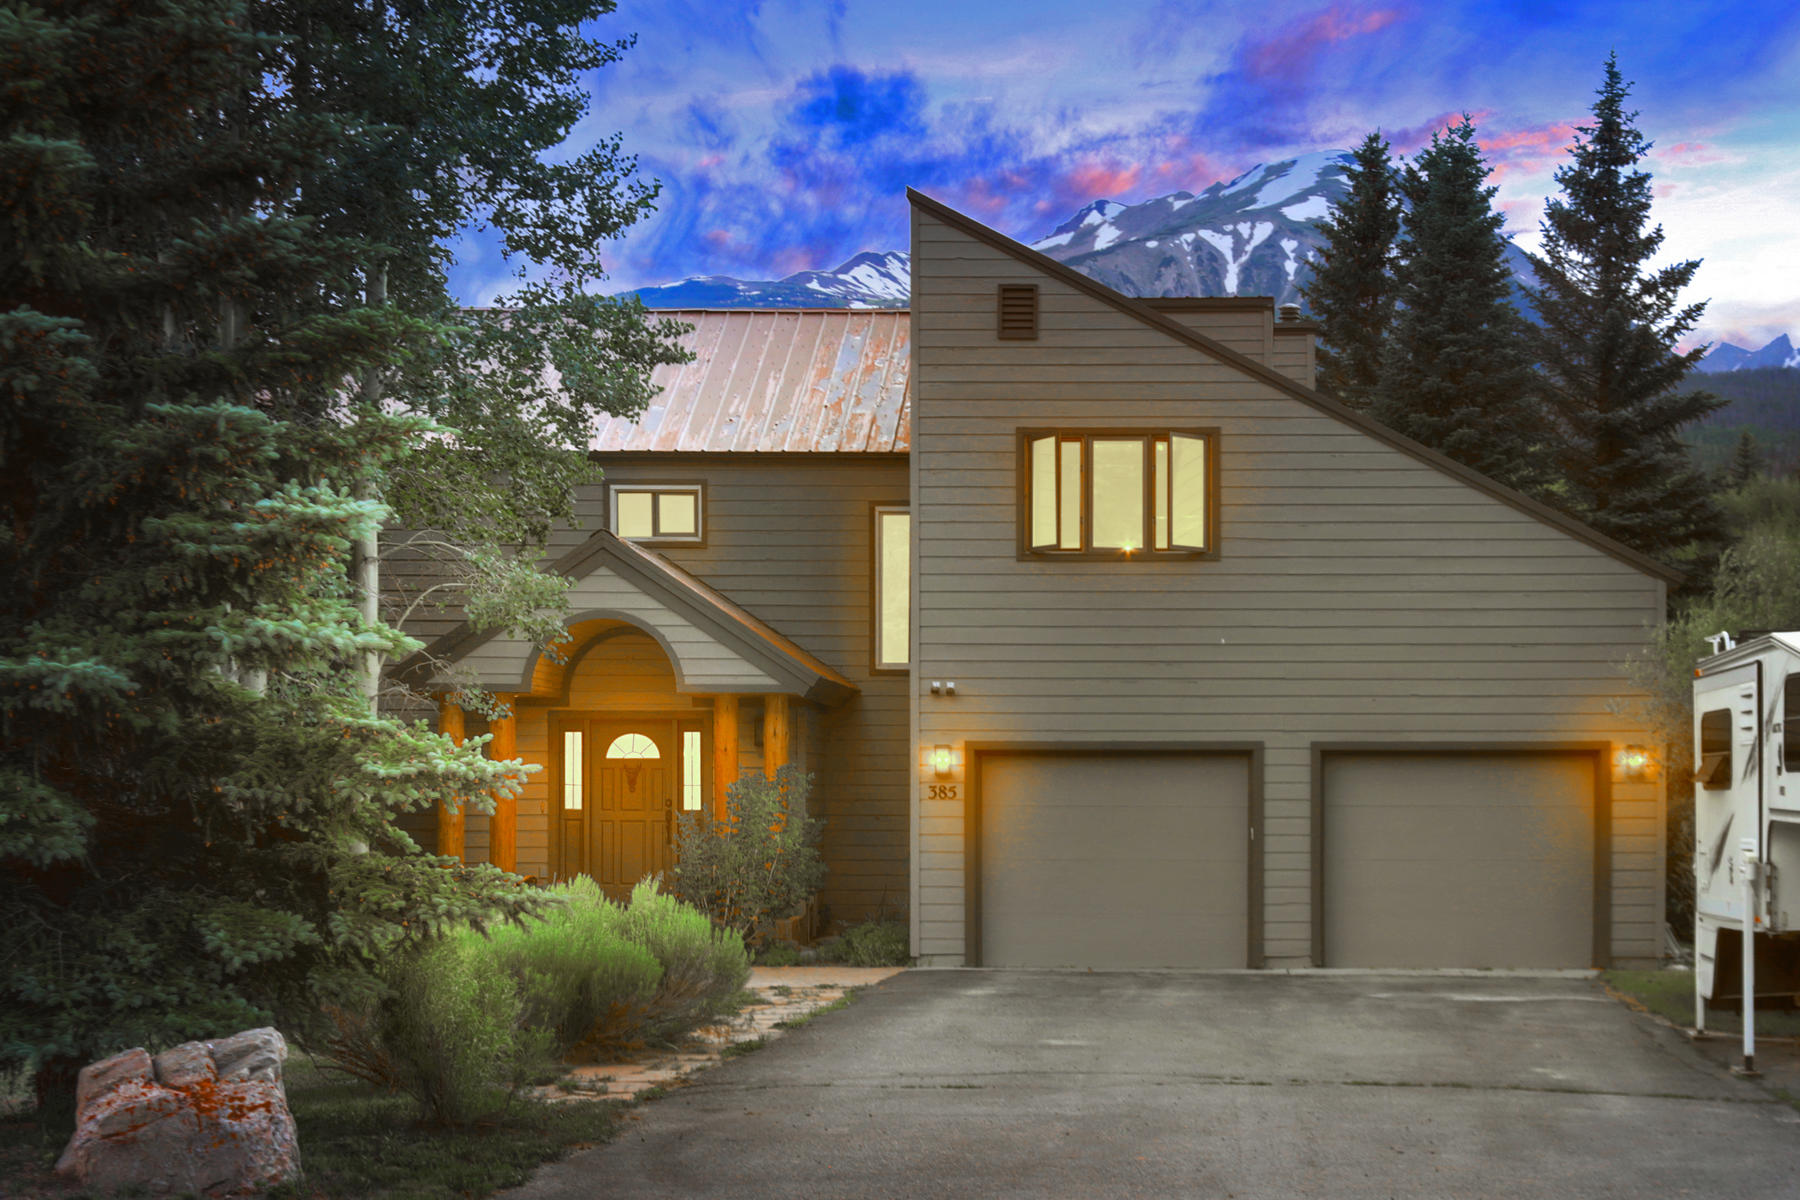 Single Family Homes for Sale at 125 Ft of Blue River Access in Your Backyard 385 Riverside Drive, Silverthorne, Colorado 80498 United States